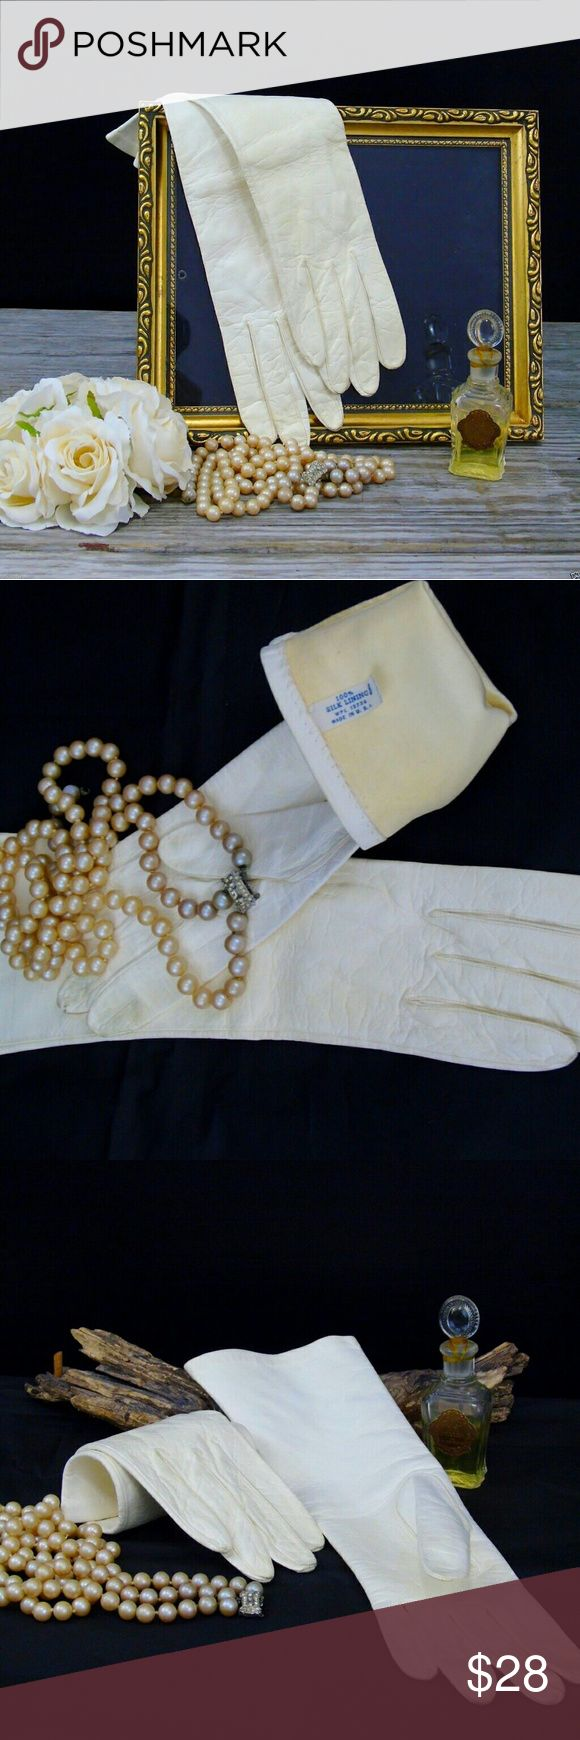 "Long  Cream Gloves Vintage Kidskin Leather Long  Cream Gloves Kidskin Leather  .Vintage 1950's Women's Gloves .13.5"" Long Tagged Size 8 (runs a bit smaller) Vintage  Accessories Gloves & Mittens"